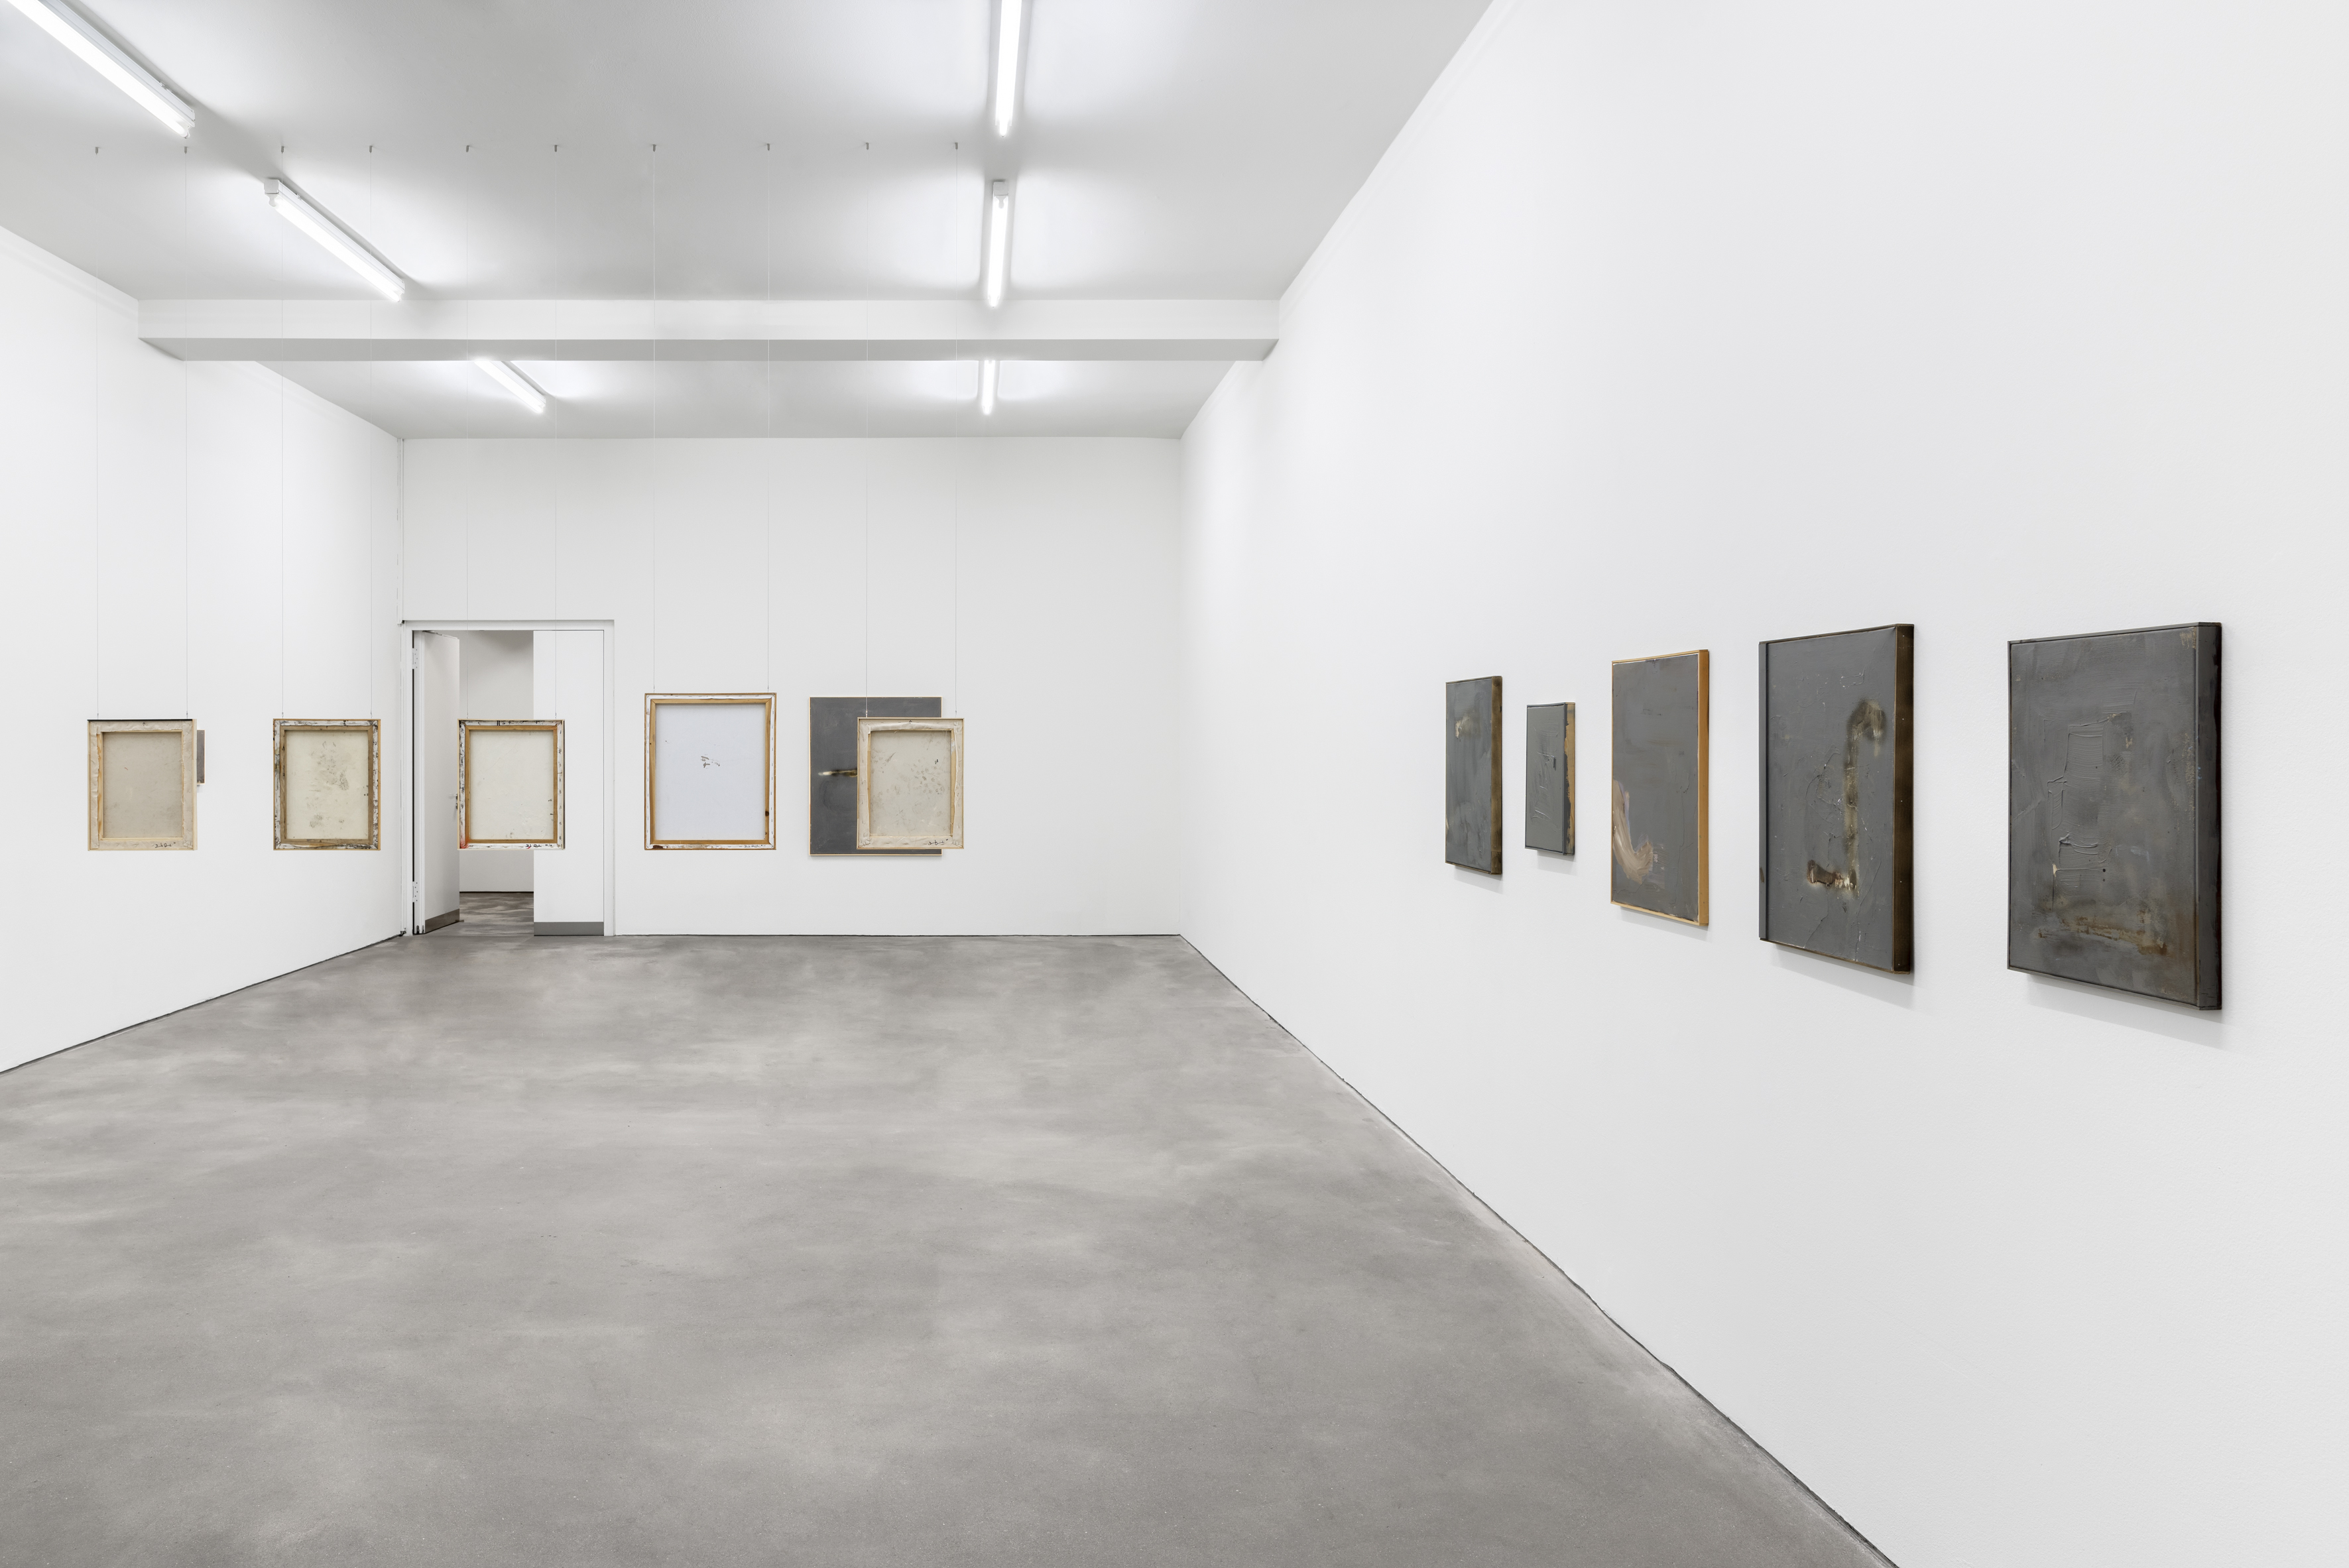 Installation view, David Ostrowski, It can't be that cold, March 3–April 10, 2021, Sprüth Magers, Berlin © David Ostrowski Courtesy Sprüth Magers Photo: Ingo Kniest